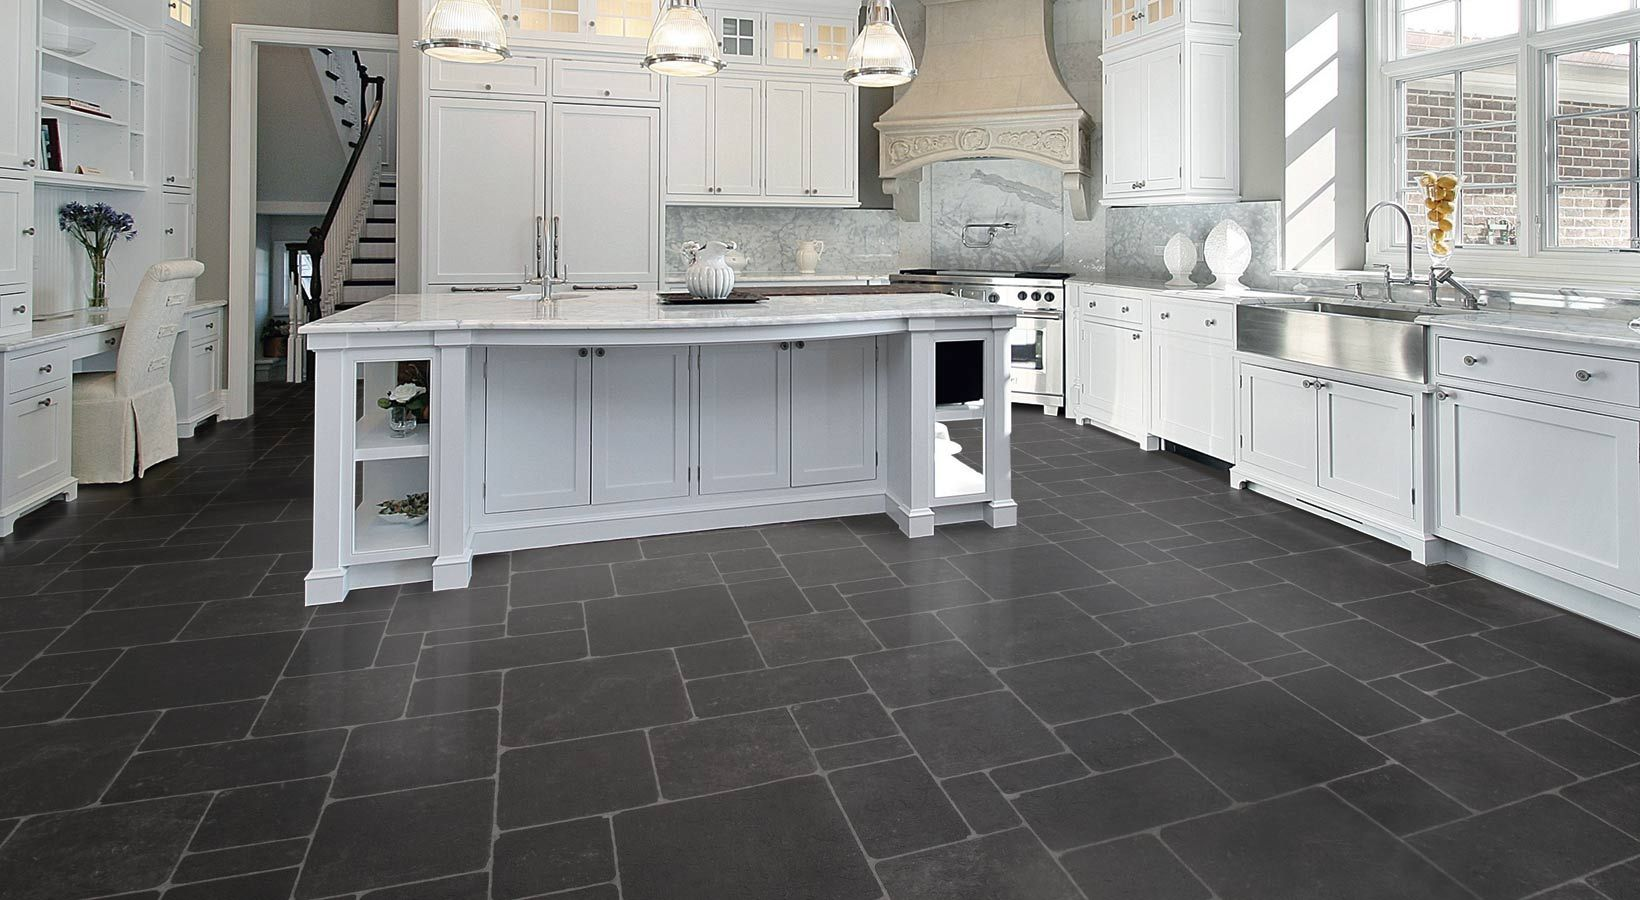 Vinyl floor floor design gorgeous white grey kitchen for Vinyl floor ideas for kitchen